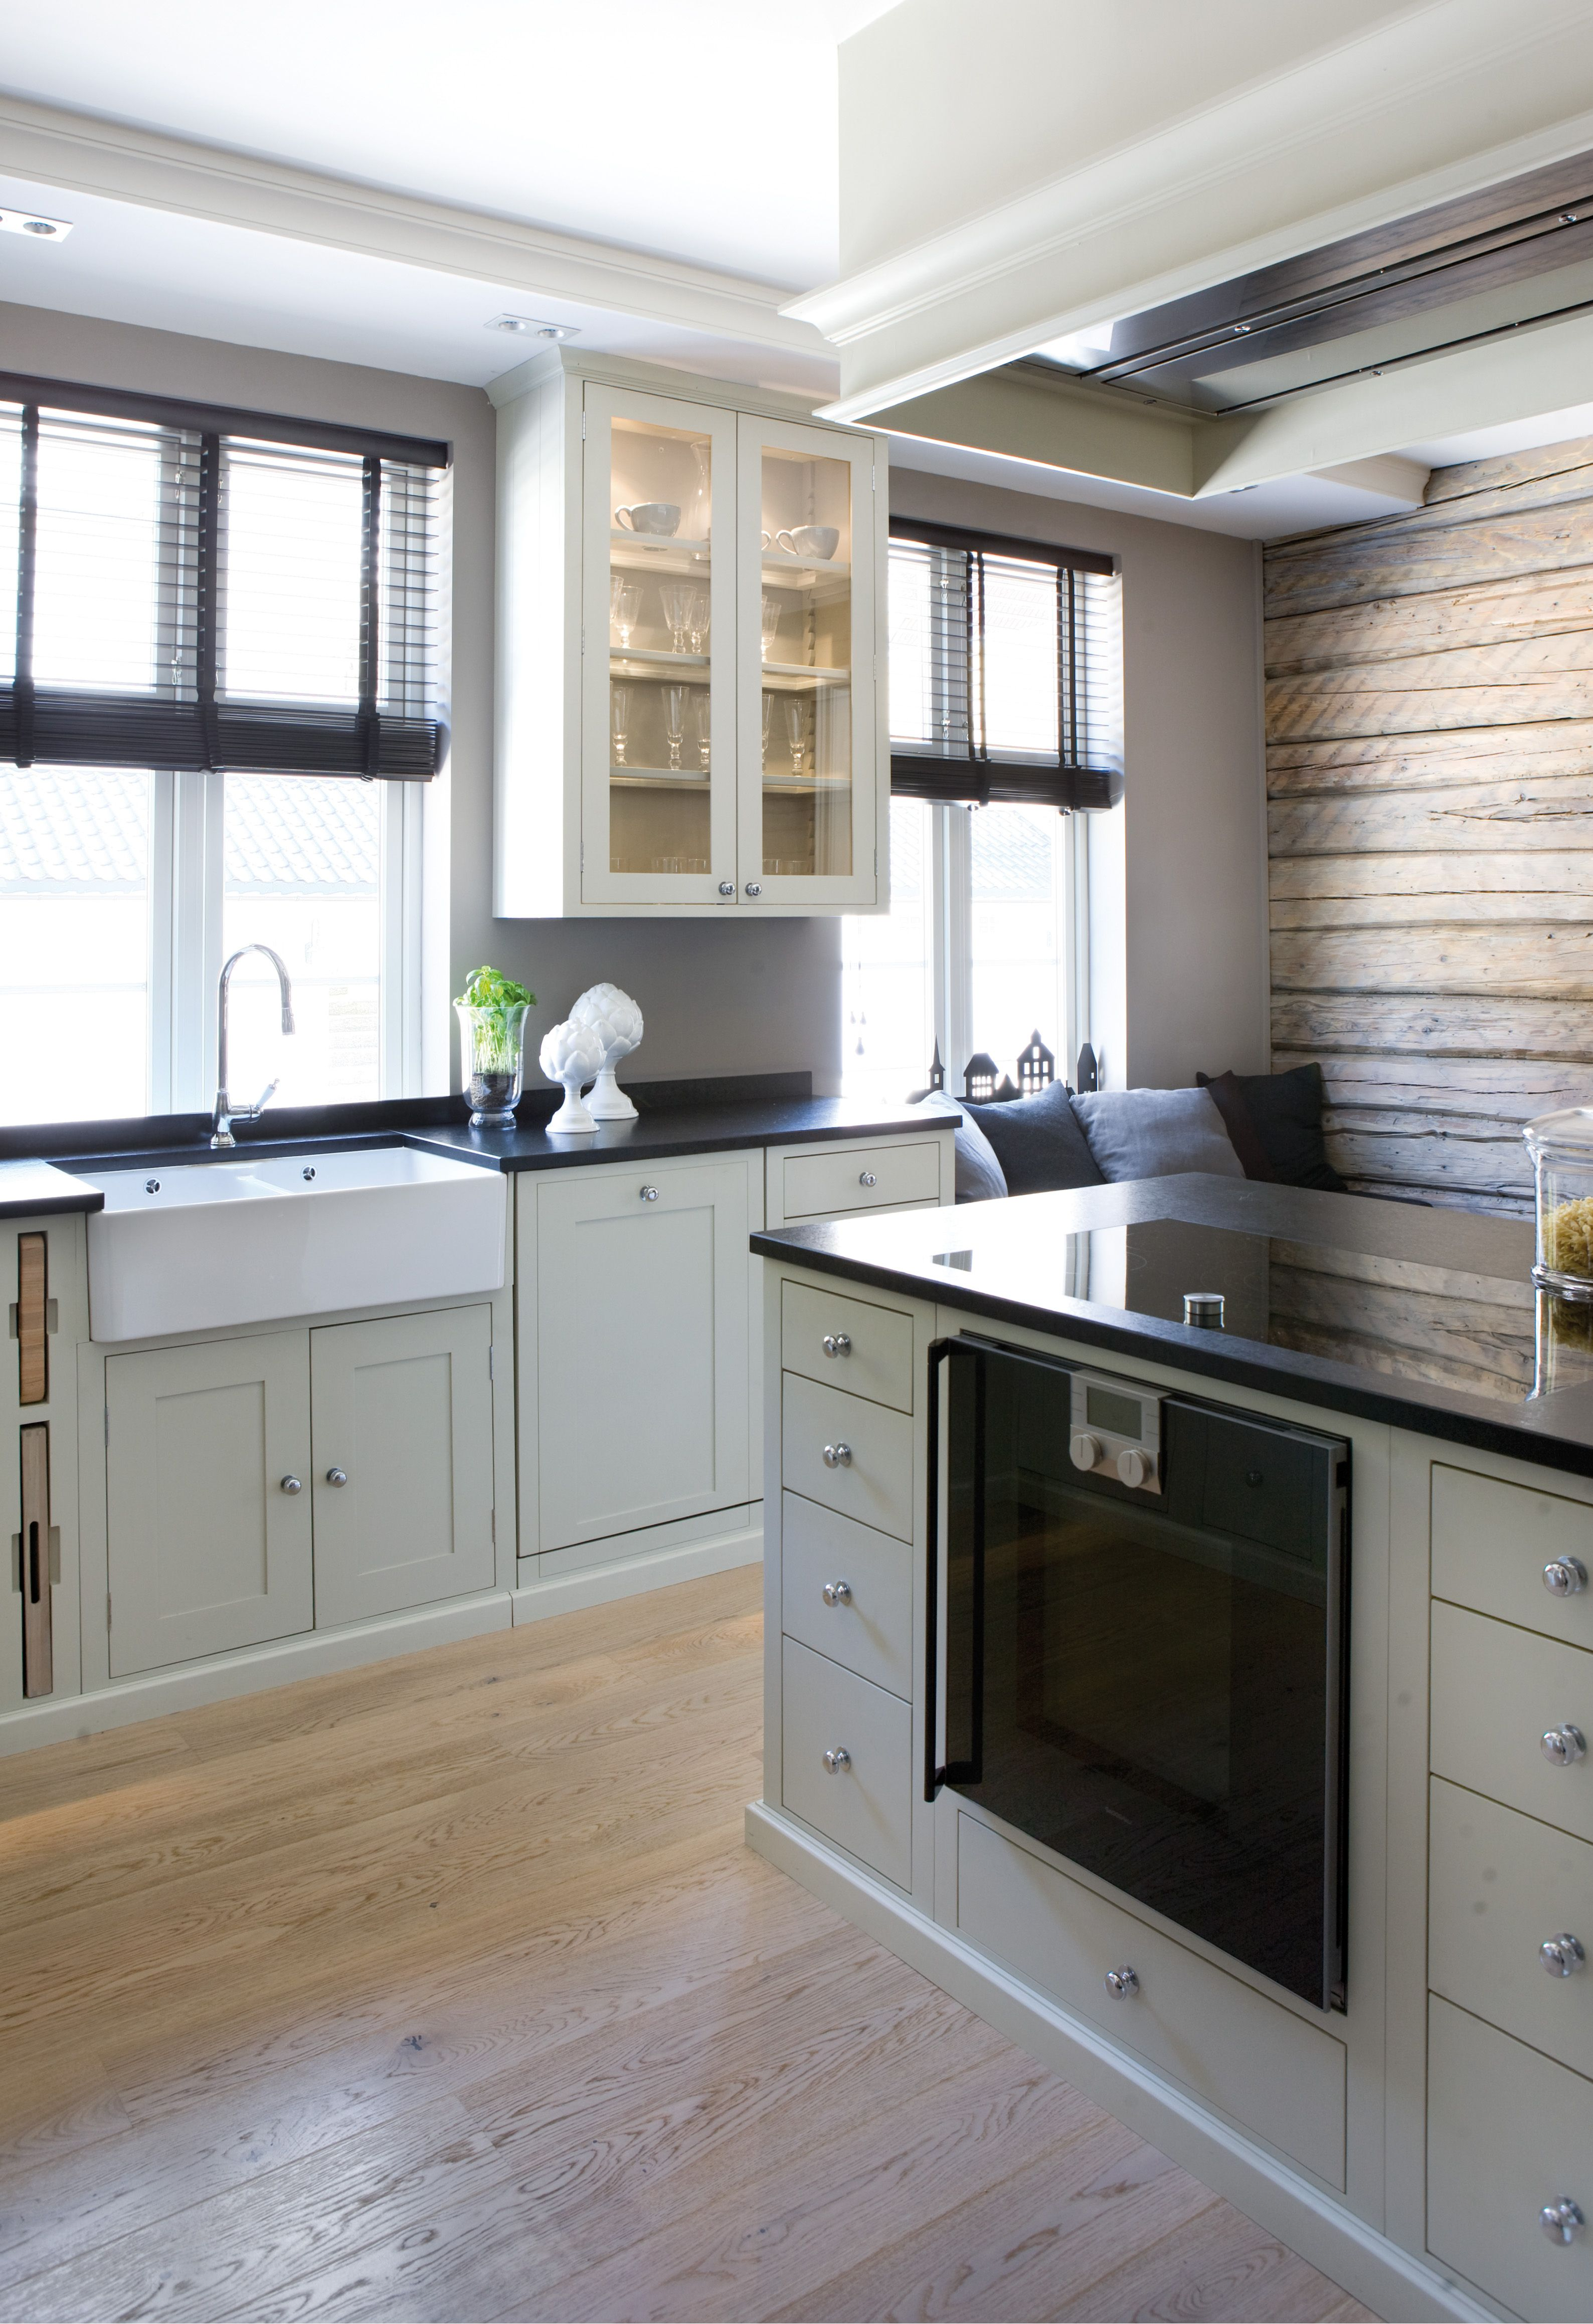 Neptune Suffolk kitchen | The heart of the home - The Kitchen ...